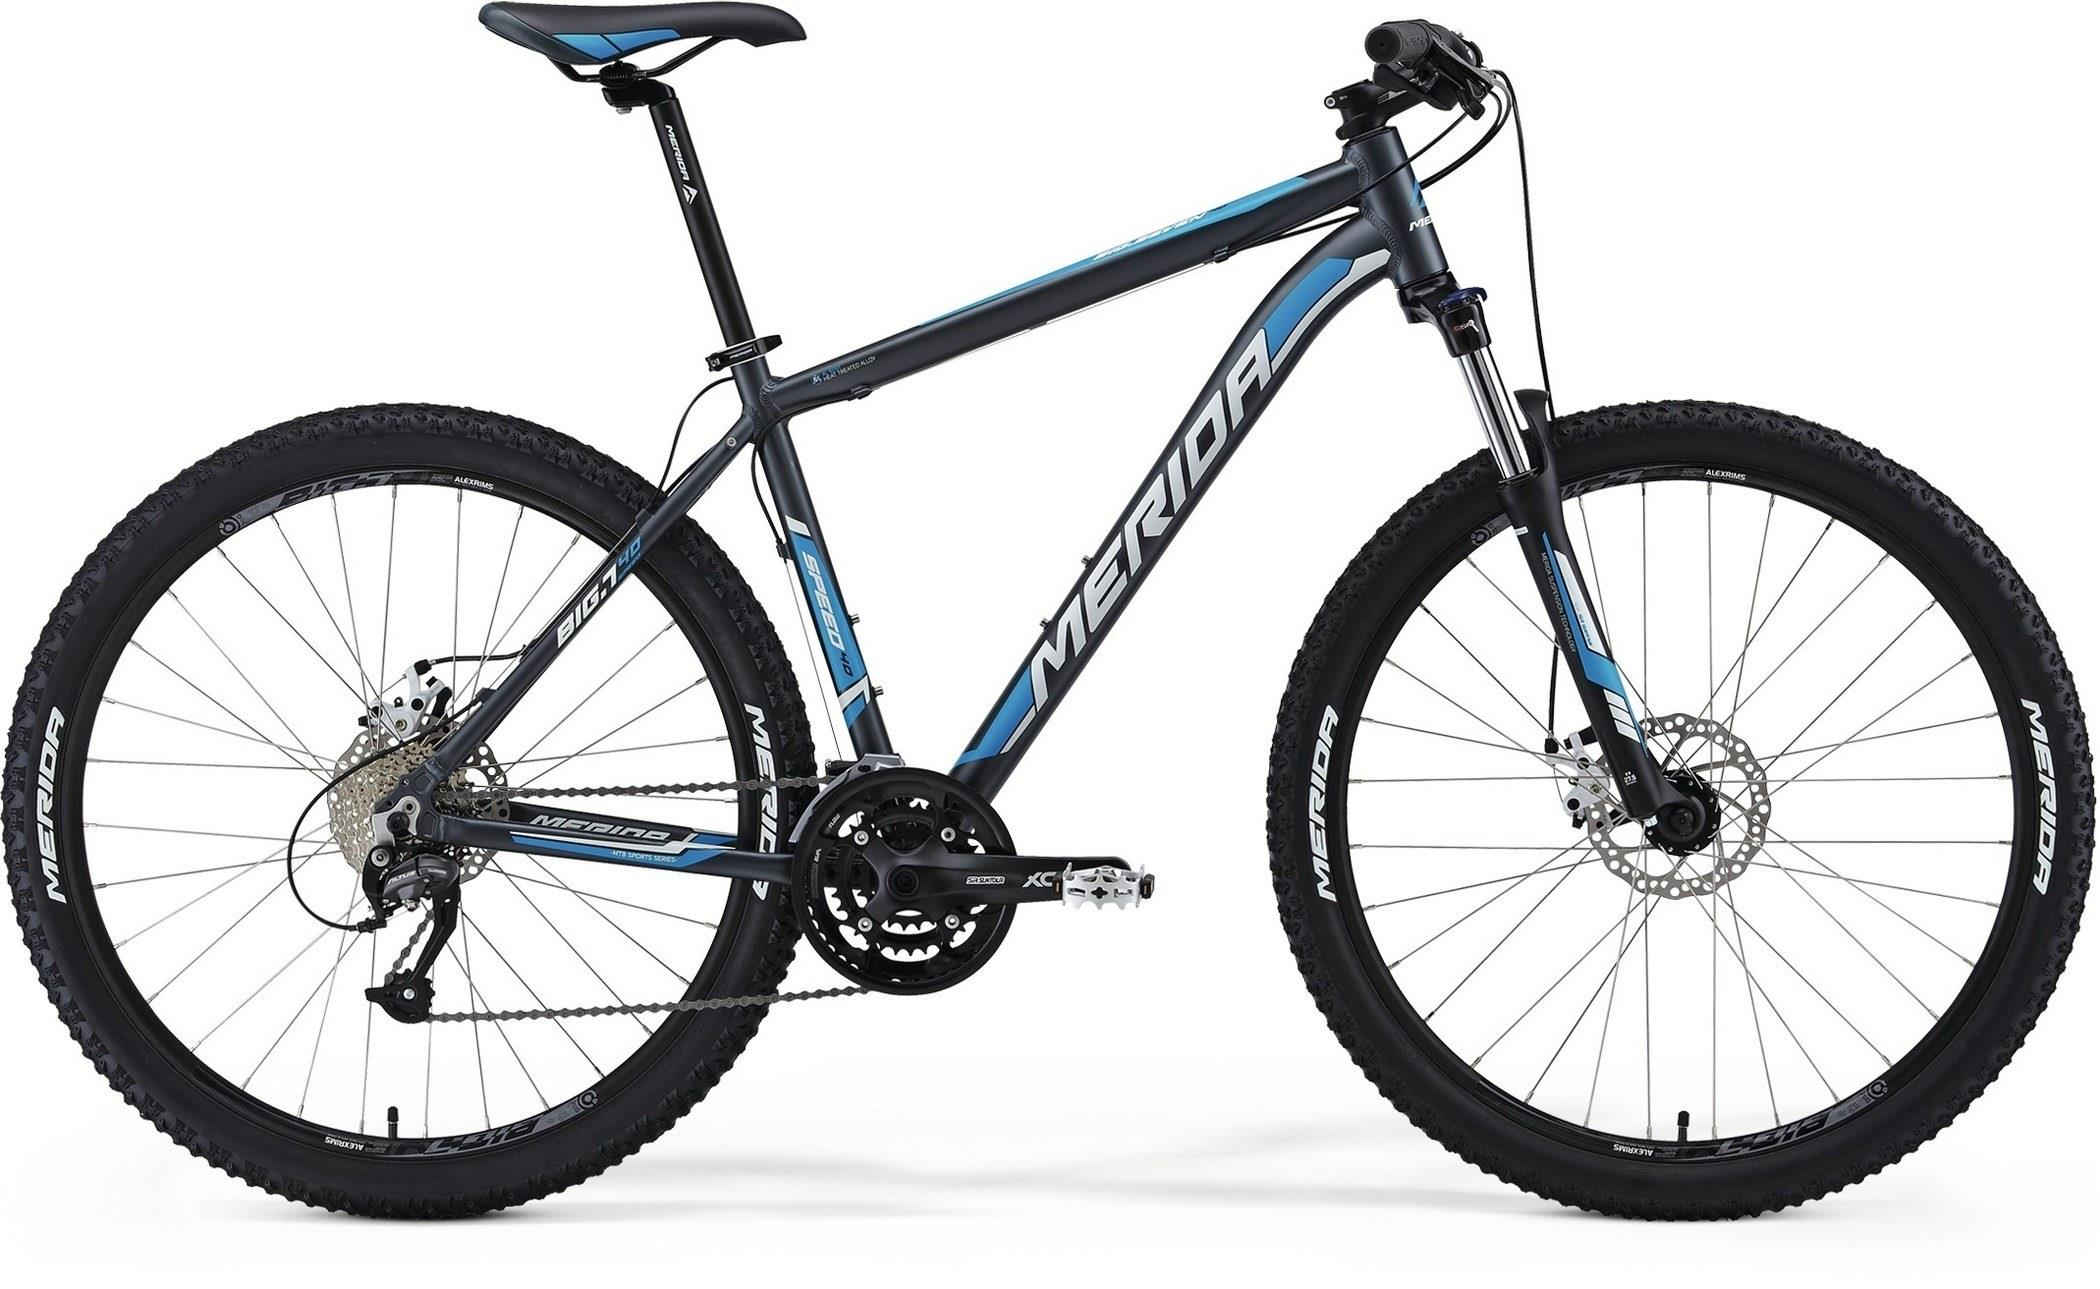 771fca8ebb1 Although better known now for their road bikes, MTB's make up a large part  of Fuji's bike range. From full carbon fibre models right through to 20